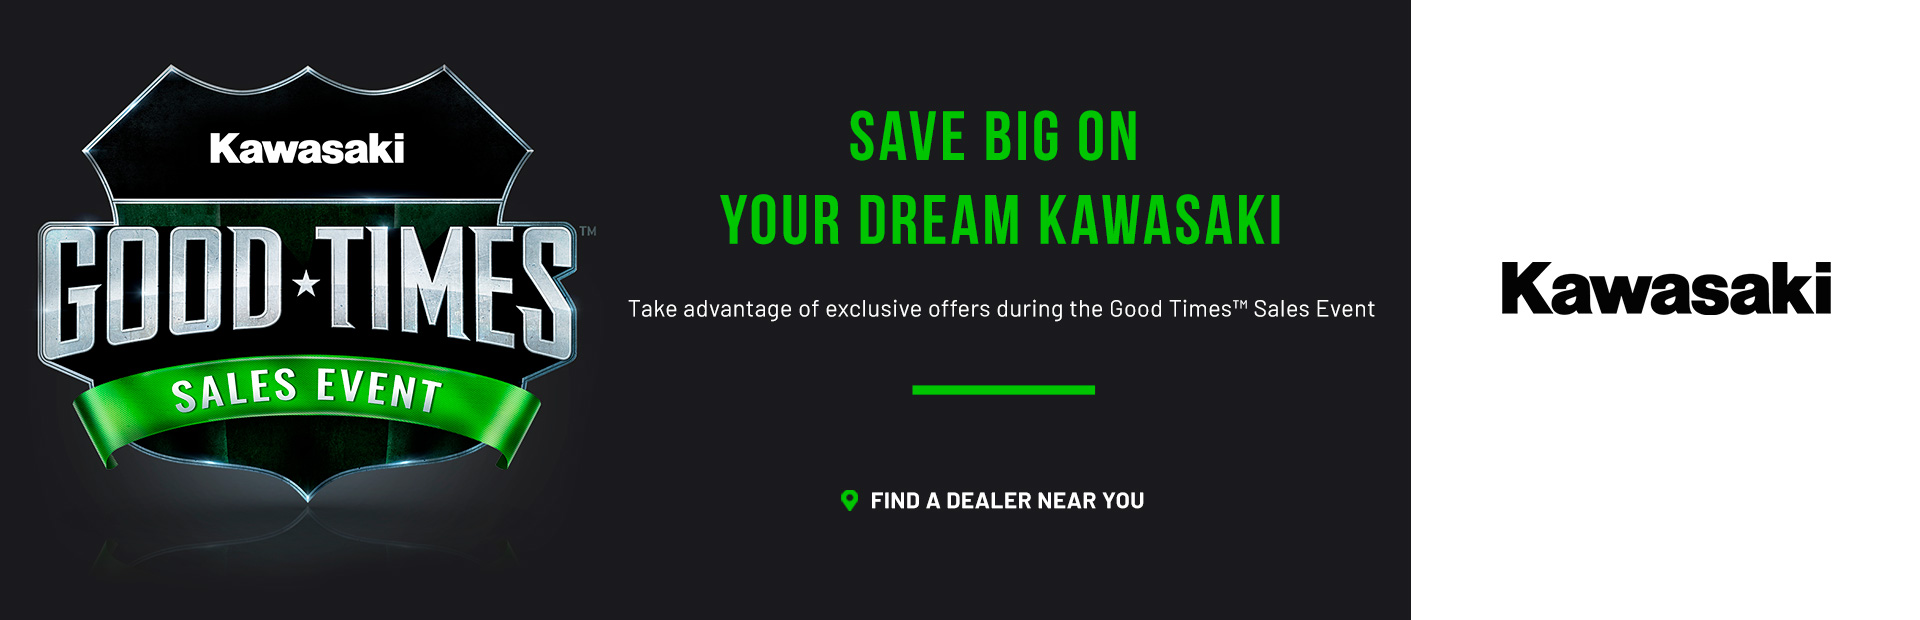 Kawasaki: Kawasaki Good Times™ Sales Event